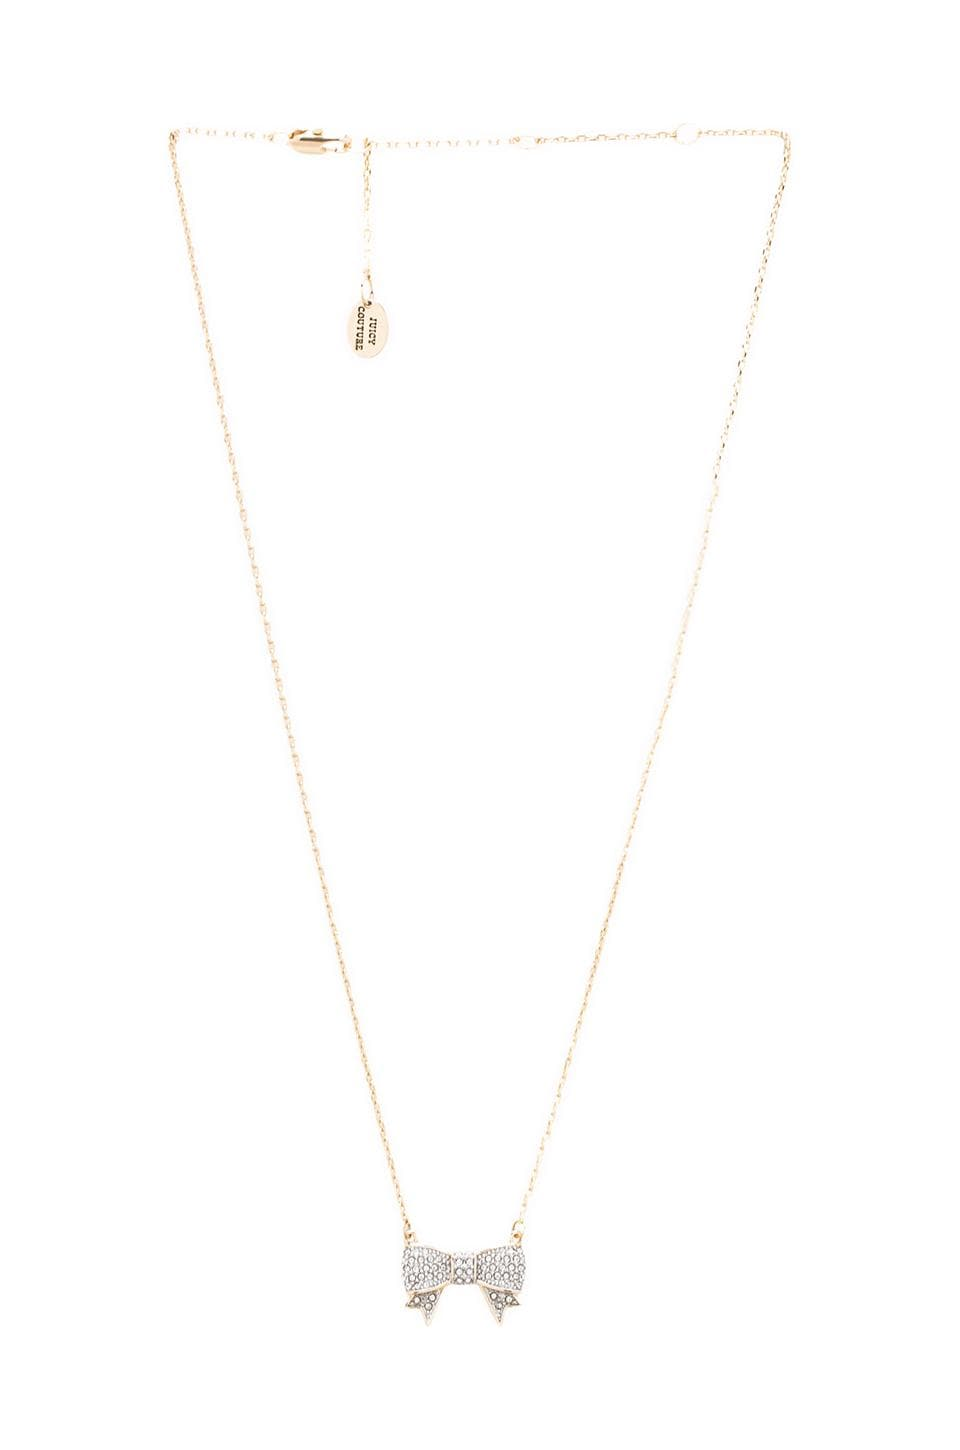 Juicy Couture Pave Bow Wish Necklace in Gold